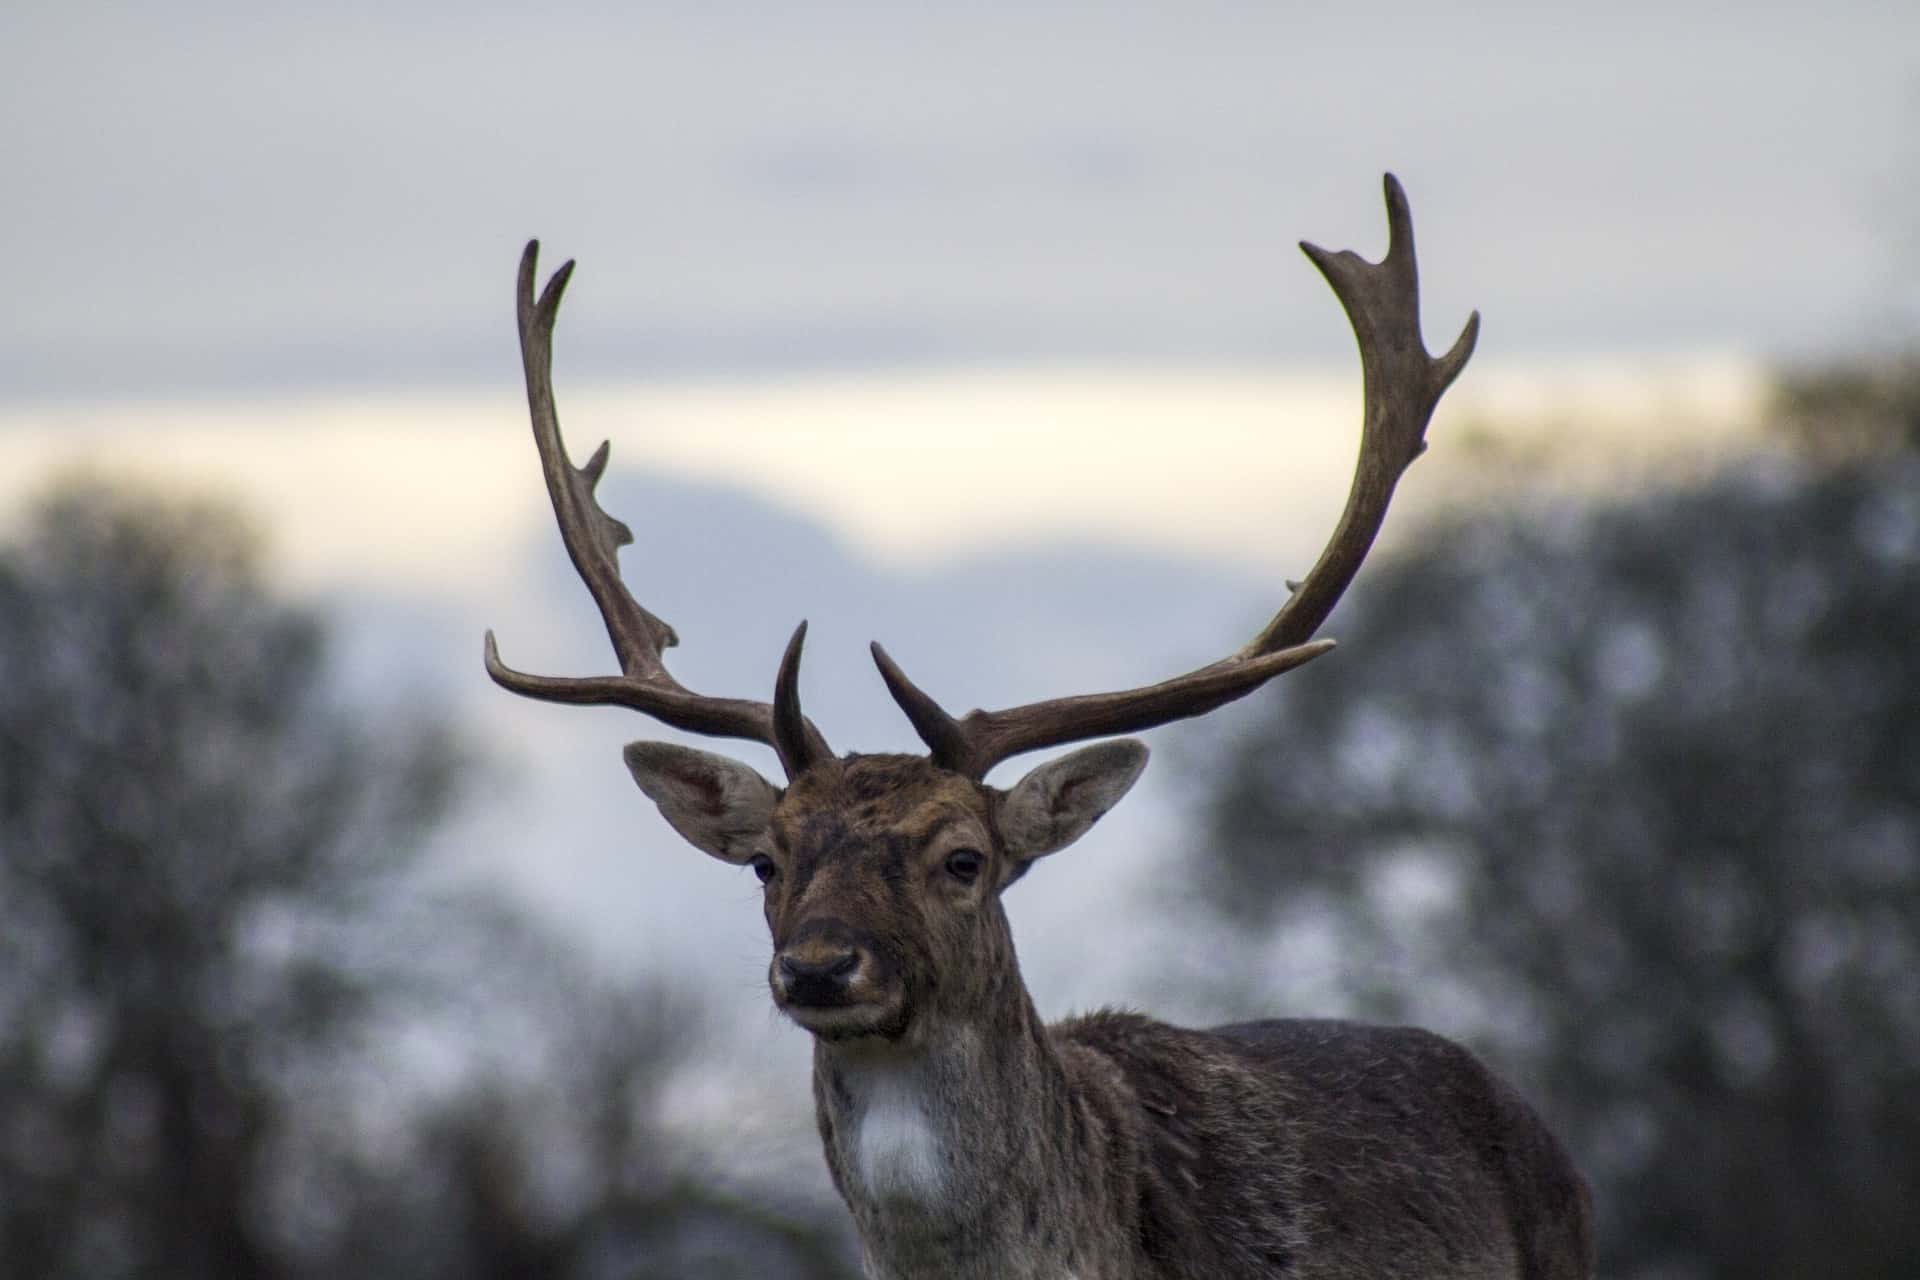 Different Uses of Trail Camera - Deer Hunting